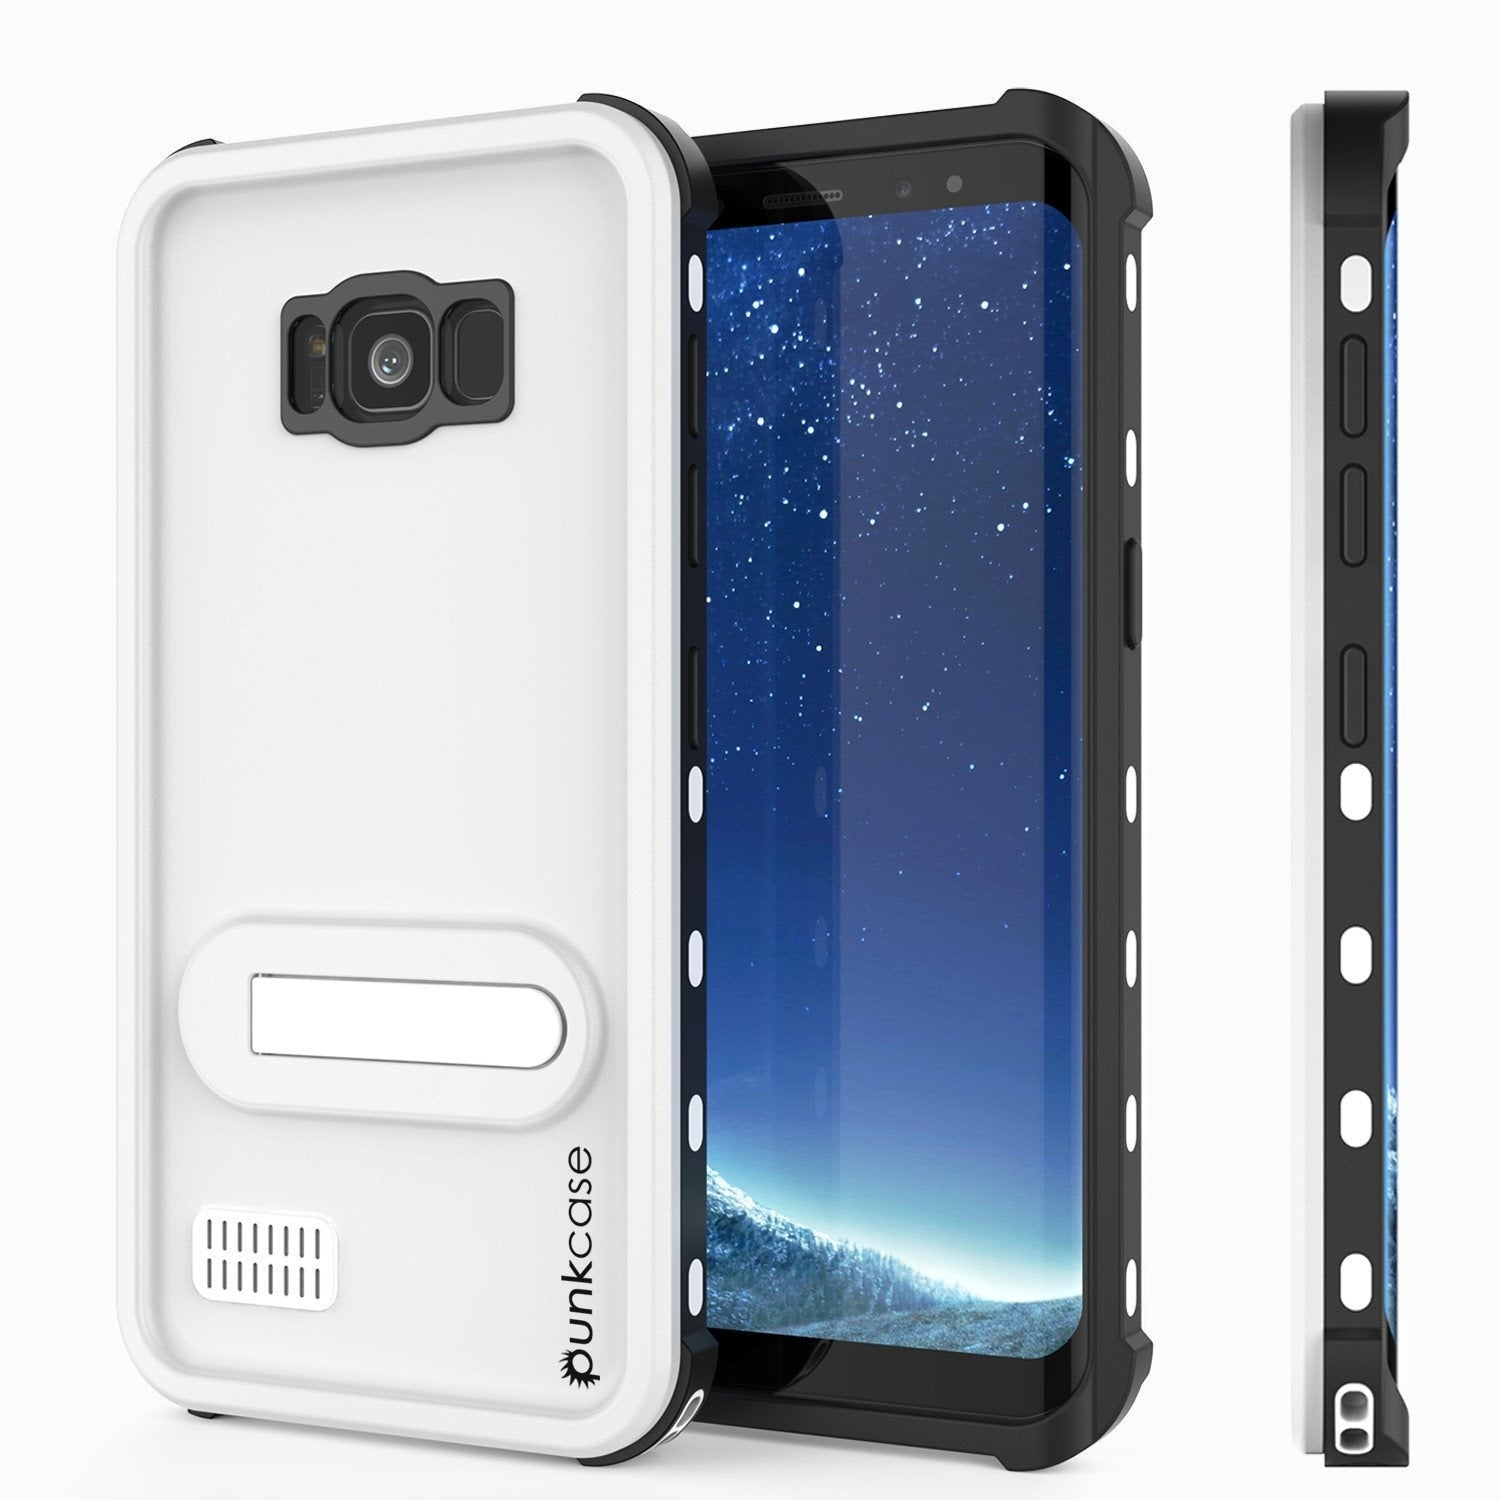 Galaxy S8 Waterproof Case, Punkcase KickStud Series Armor Cover[White]